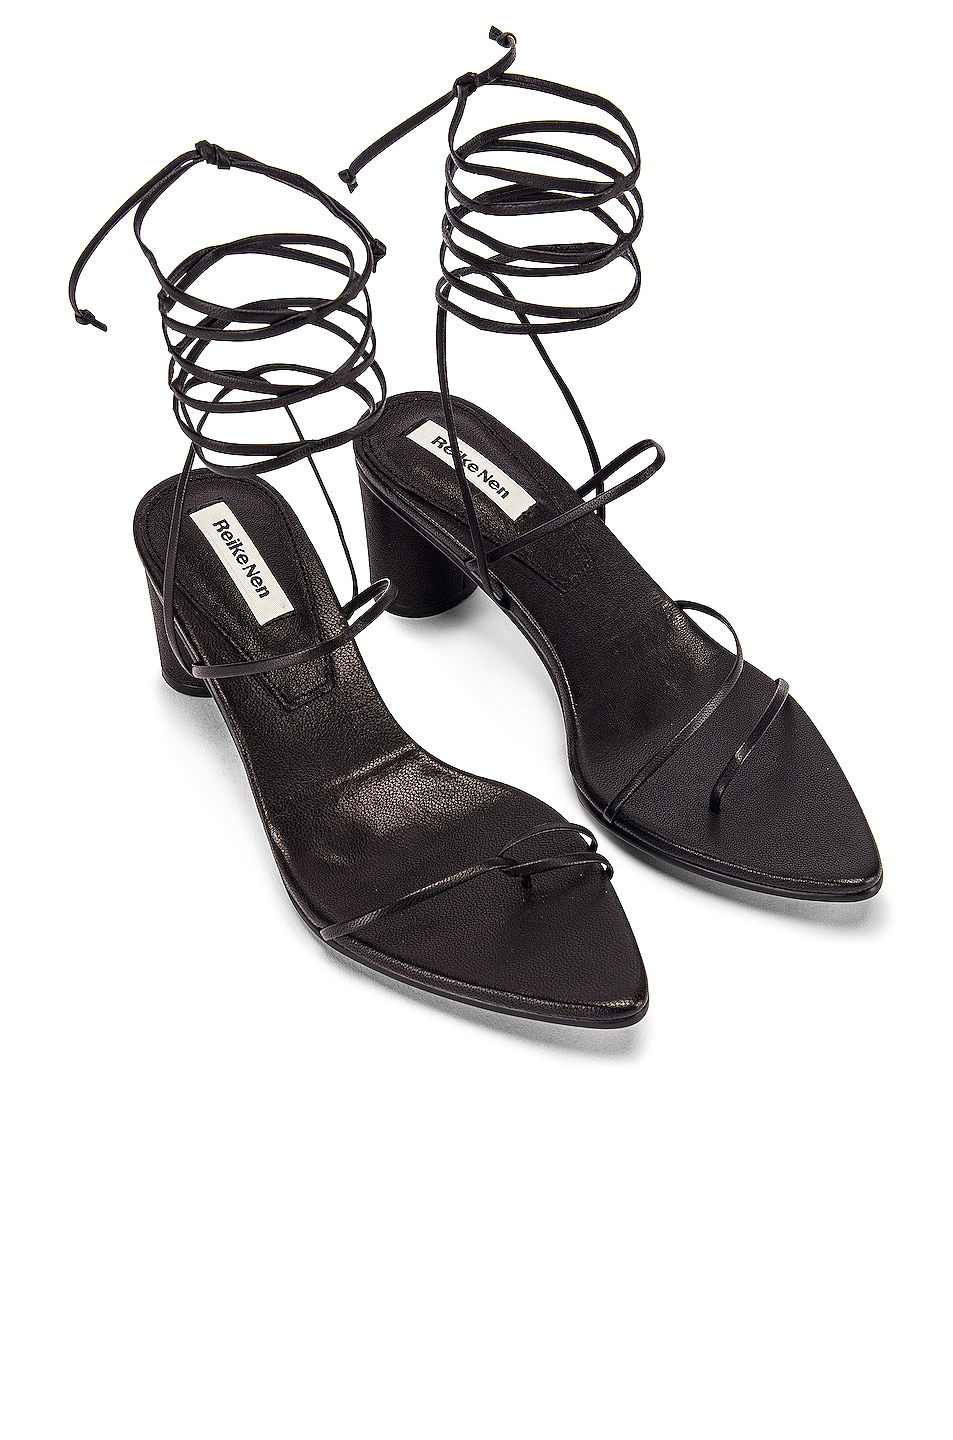 Image 1 of Reike Nen Odd Pair Heels in Black